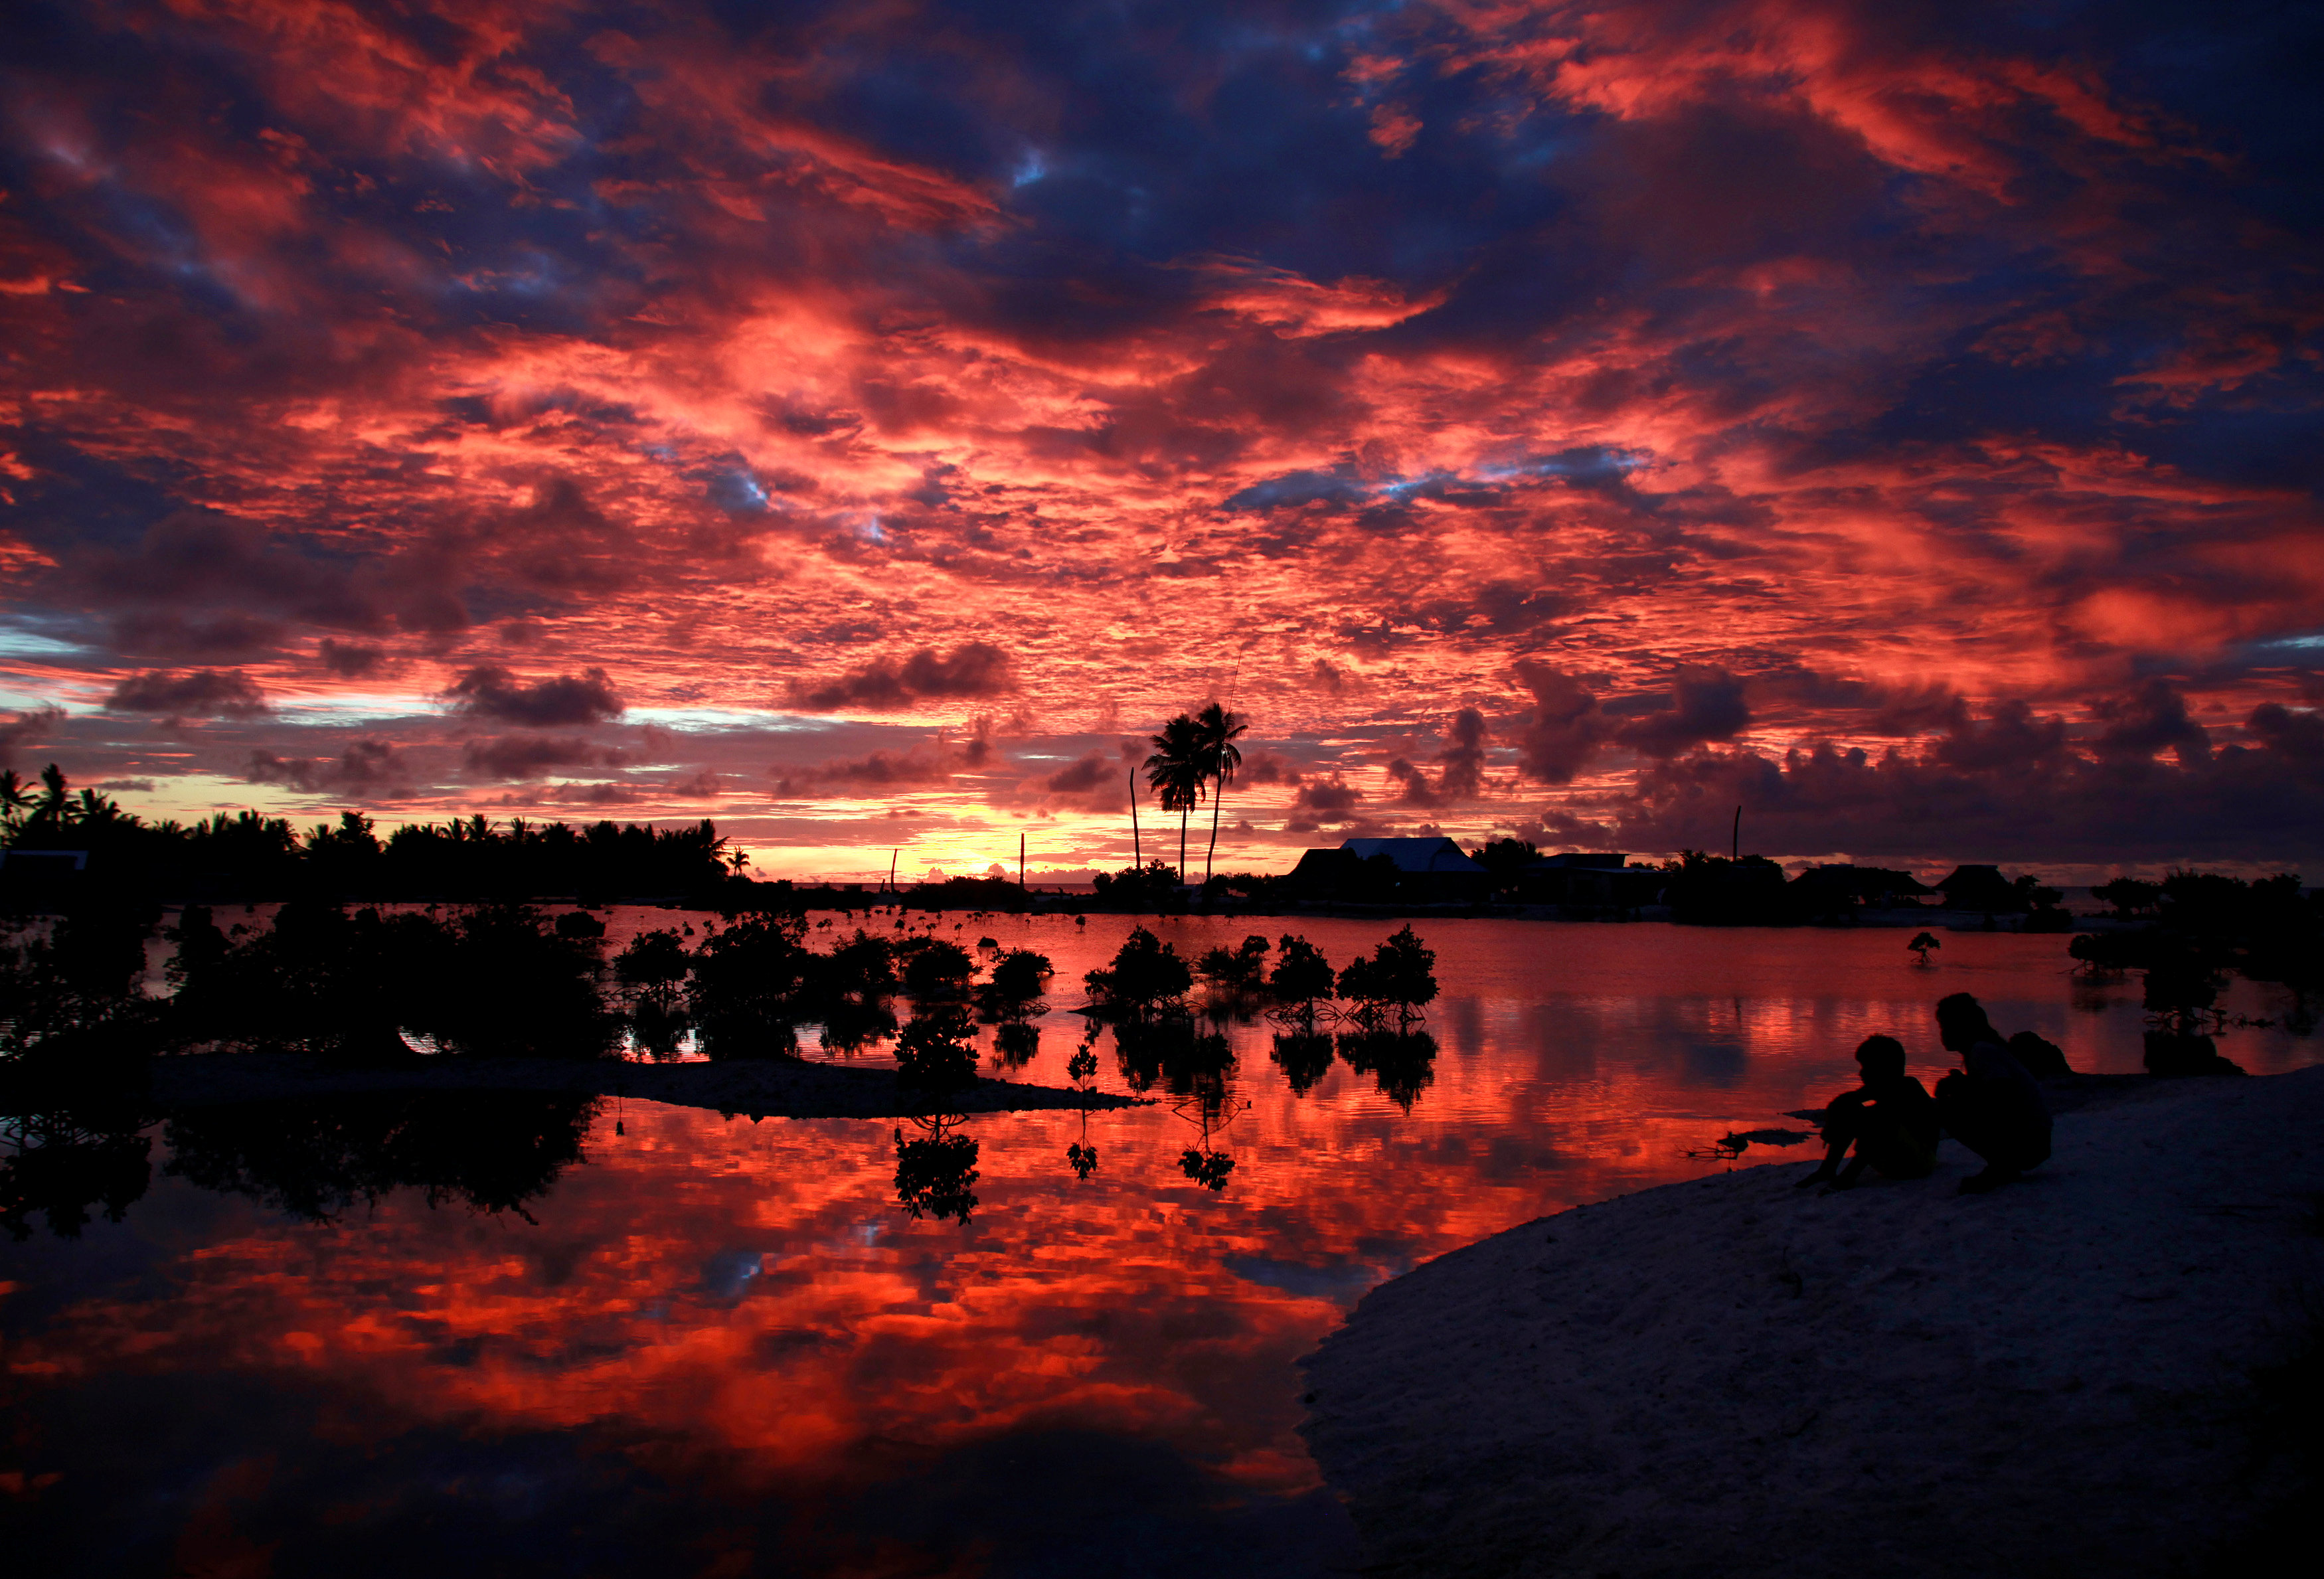 Villagers watch the sunset over a small lagoon near the village of Tangintebu on South Tarawa in the central Pacific island nation of Kiribati May 25, 2013.  REUTERS/David Gray/File Photo